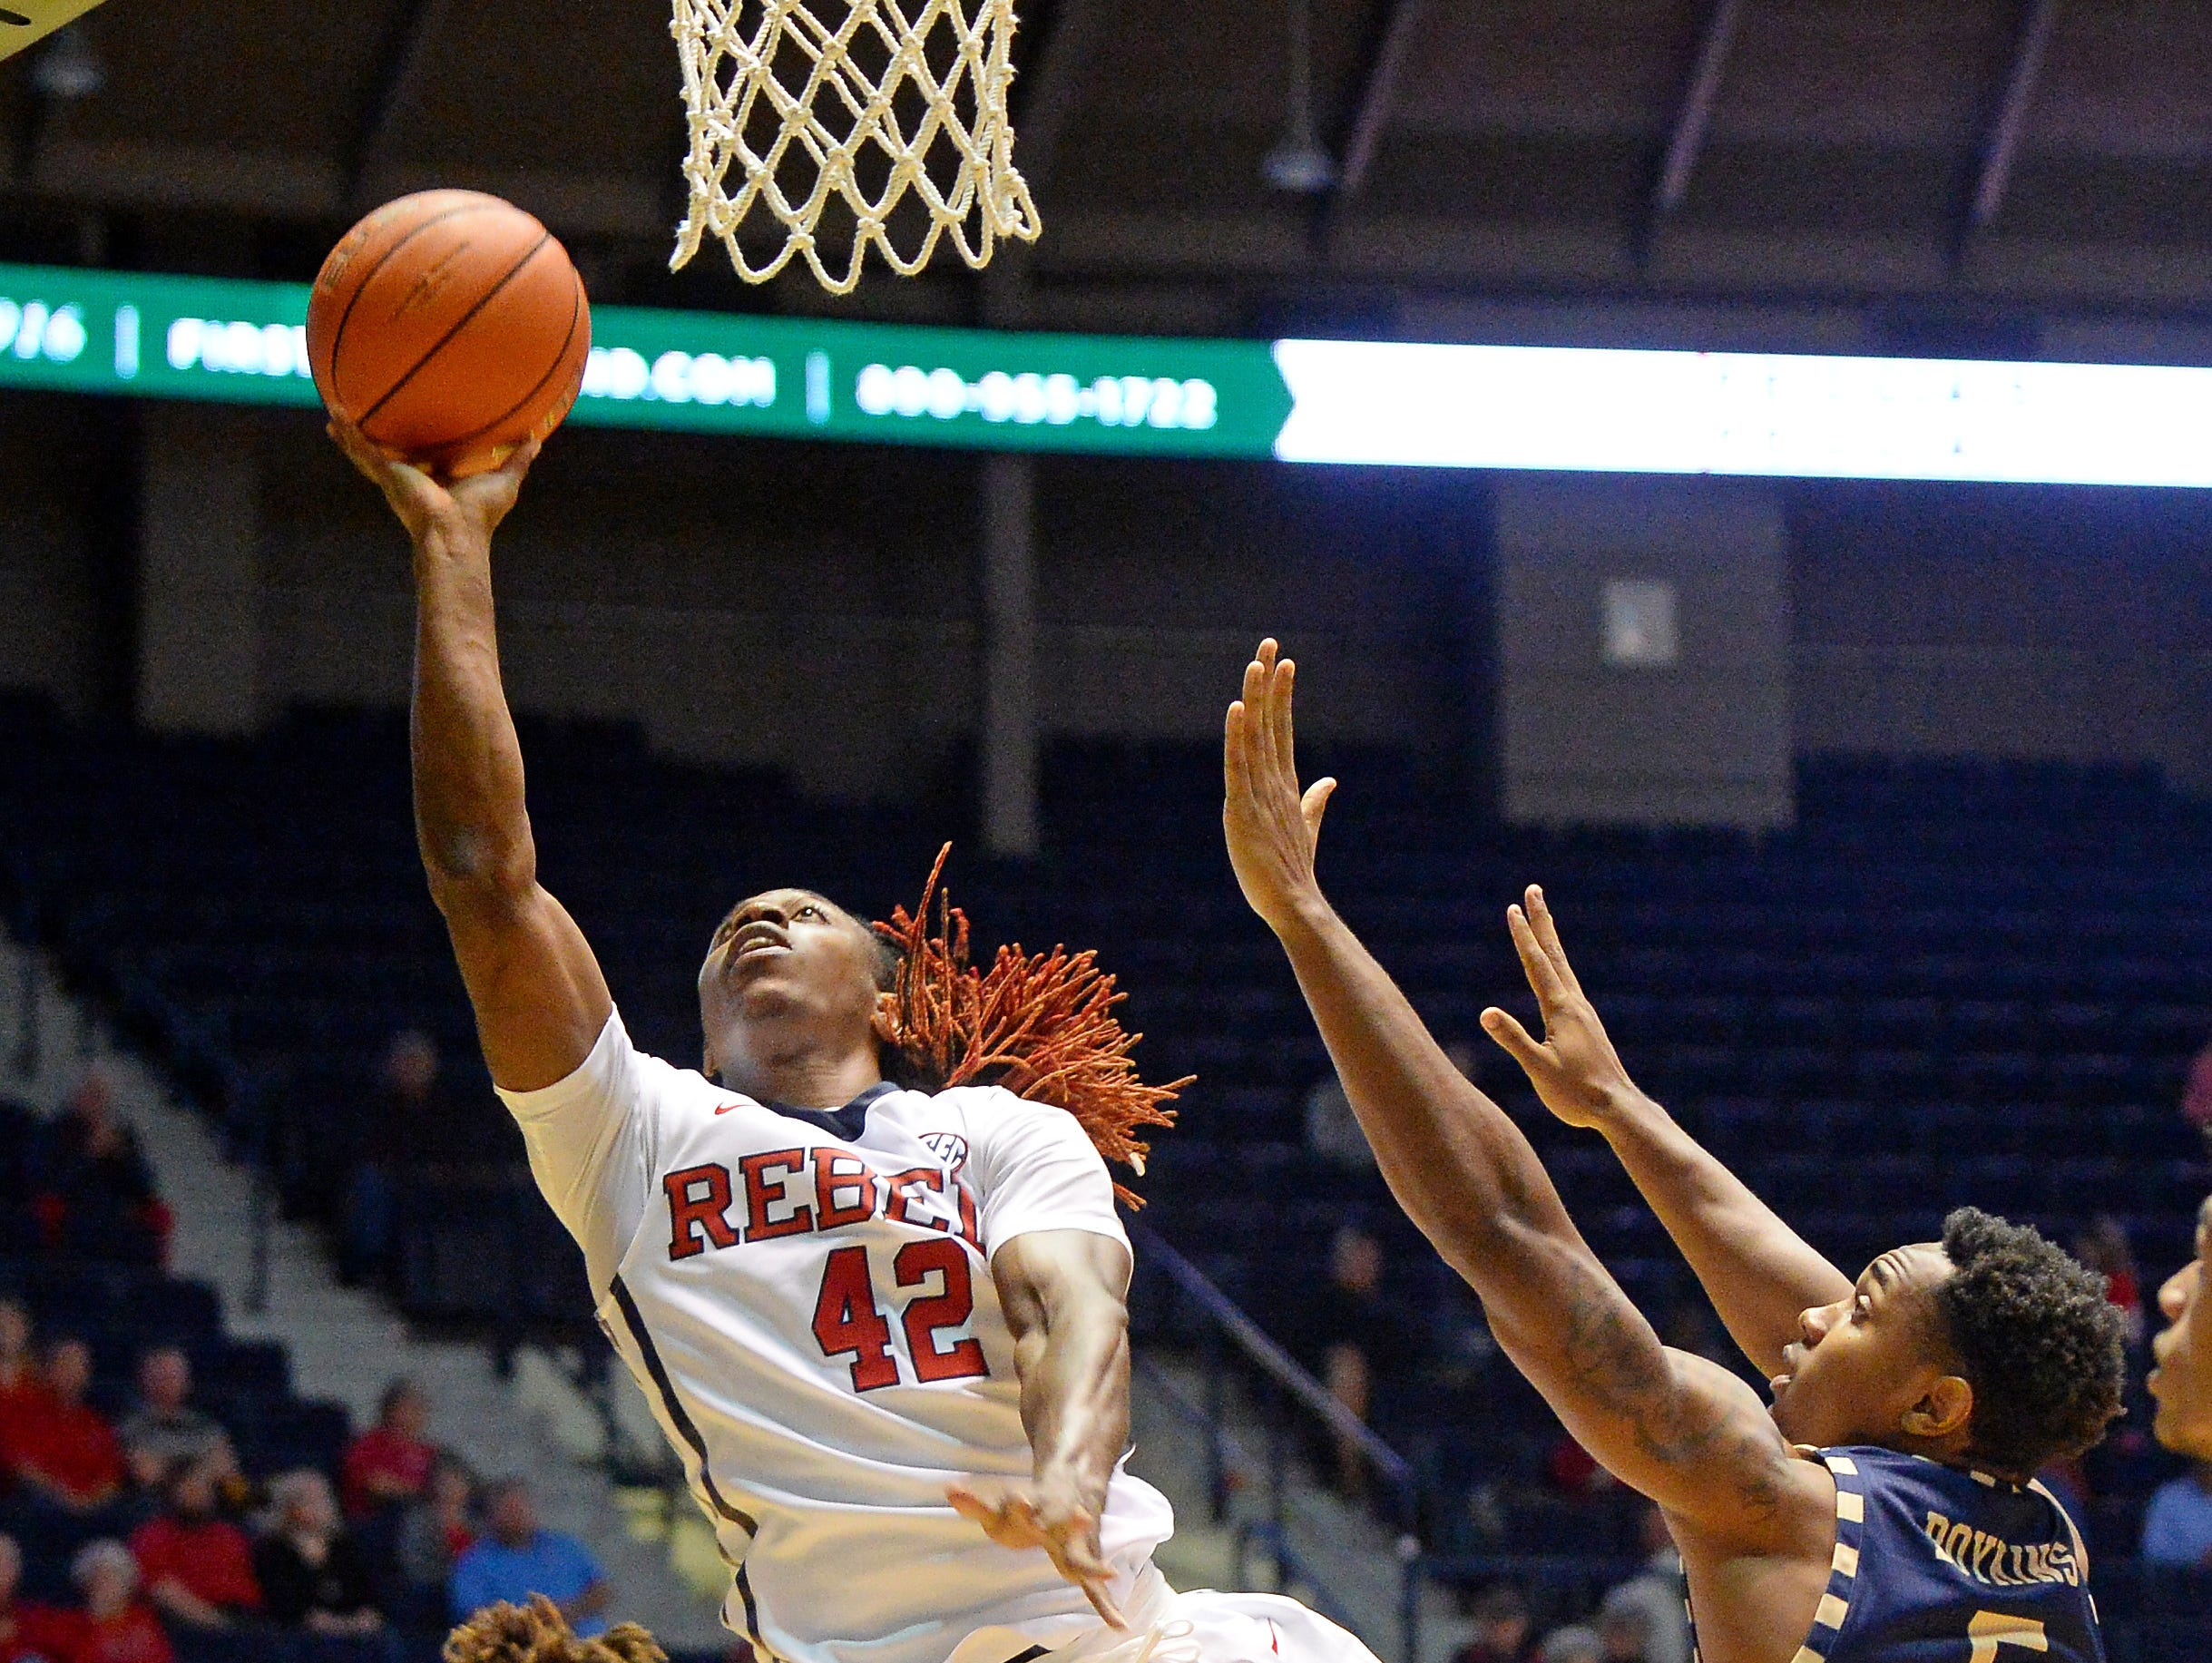 Ole Miss guard Stefan Moody takes a shot past a Georgia Southern defender on Monday at Tad Smith Coliseum in Oxford. Ole Miss won 82-72.